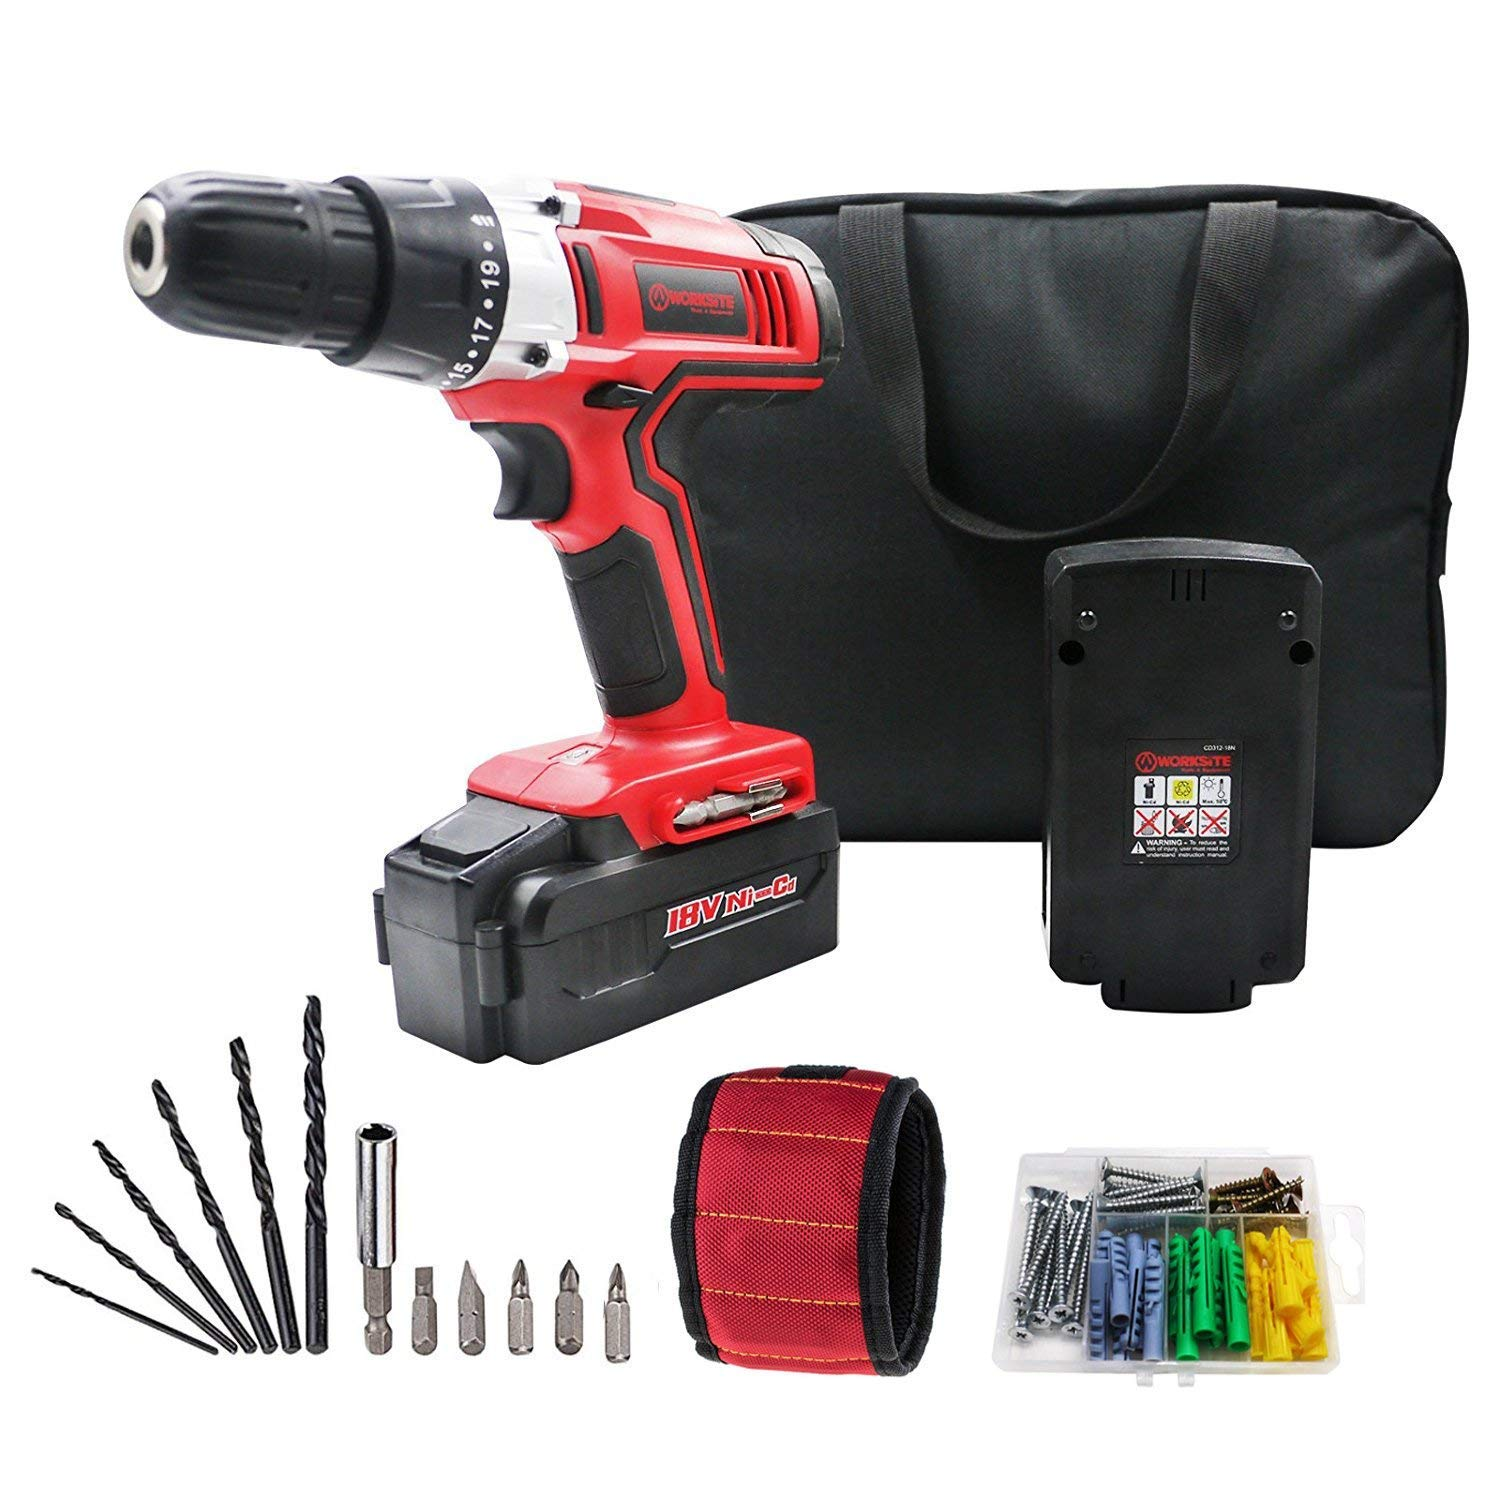 WORKSITE 18V Cordless Drill with 2 Pcs 1200 mAh Batteries, 20 Position Keyless Clutch, Variable Speed Switch, LED Light, Expansion Screw, Magnet Wristband and 13 Pcs Bit Accessory Set